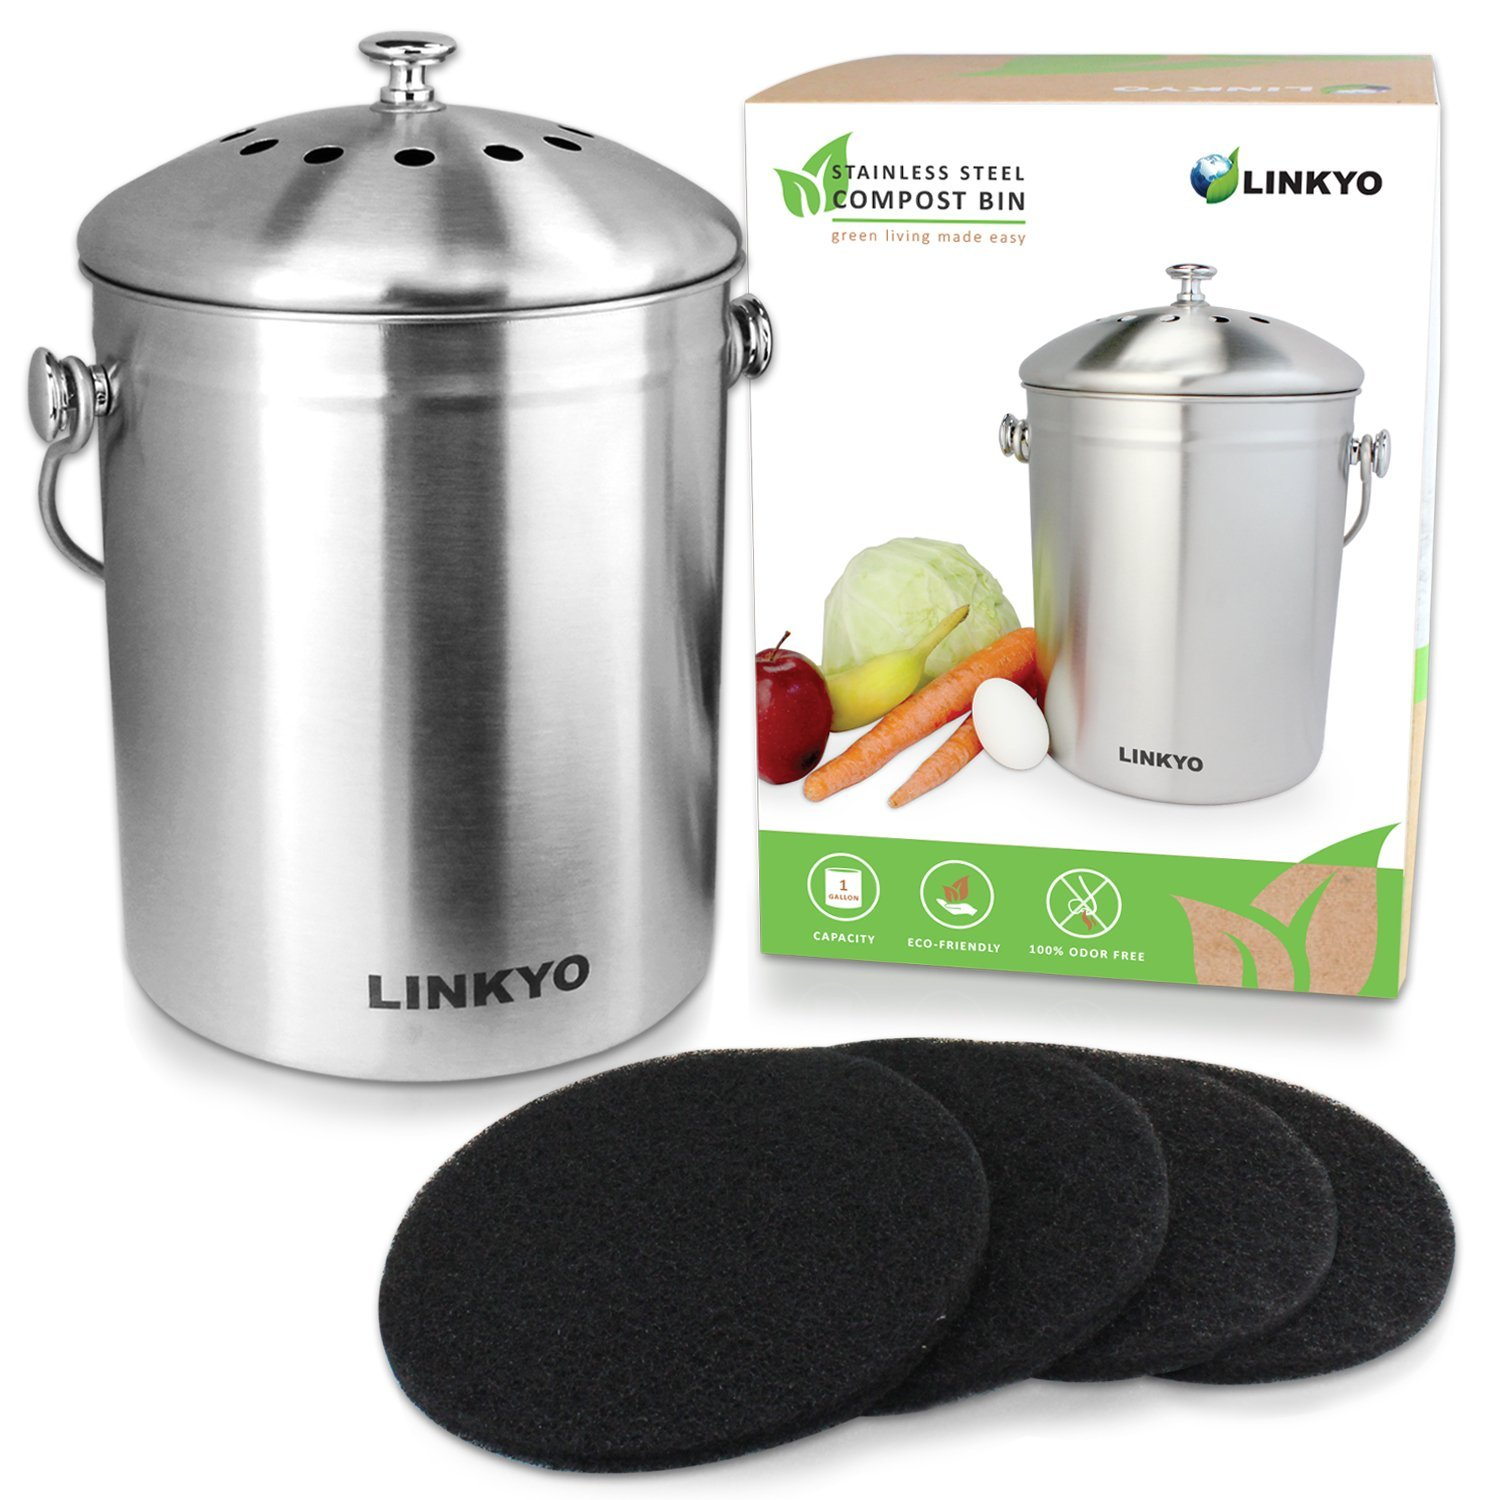 LINKYO Kitchen Compost Bin – 1 Gallon Stainless Steel Composter with ...